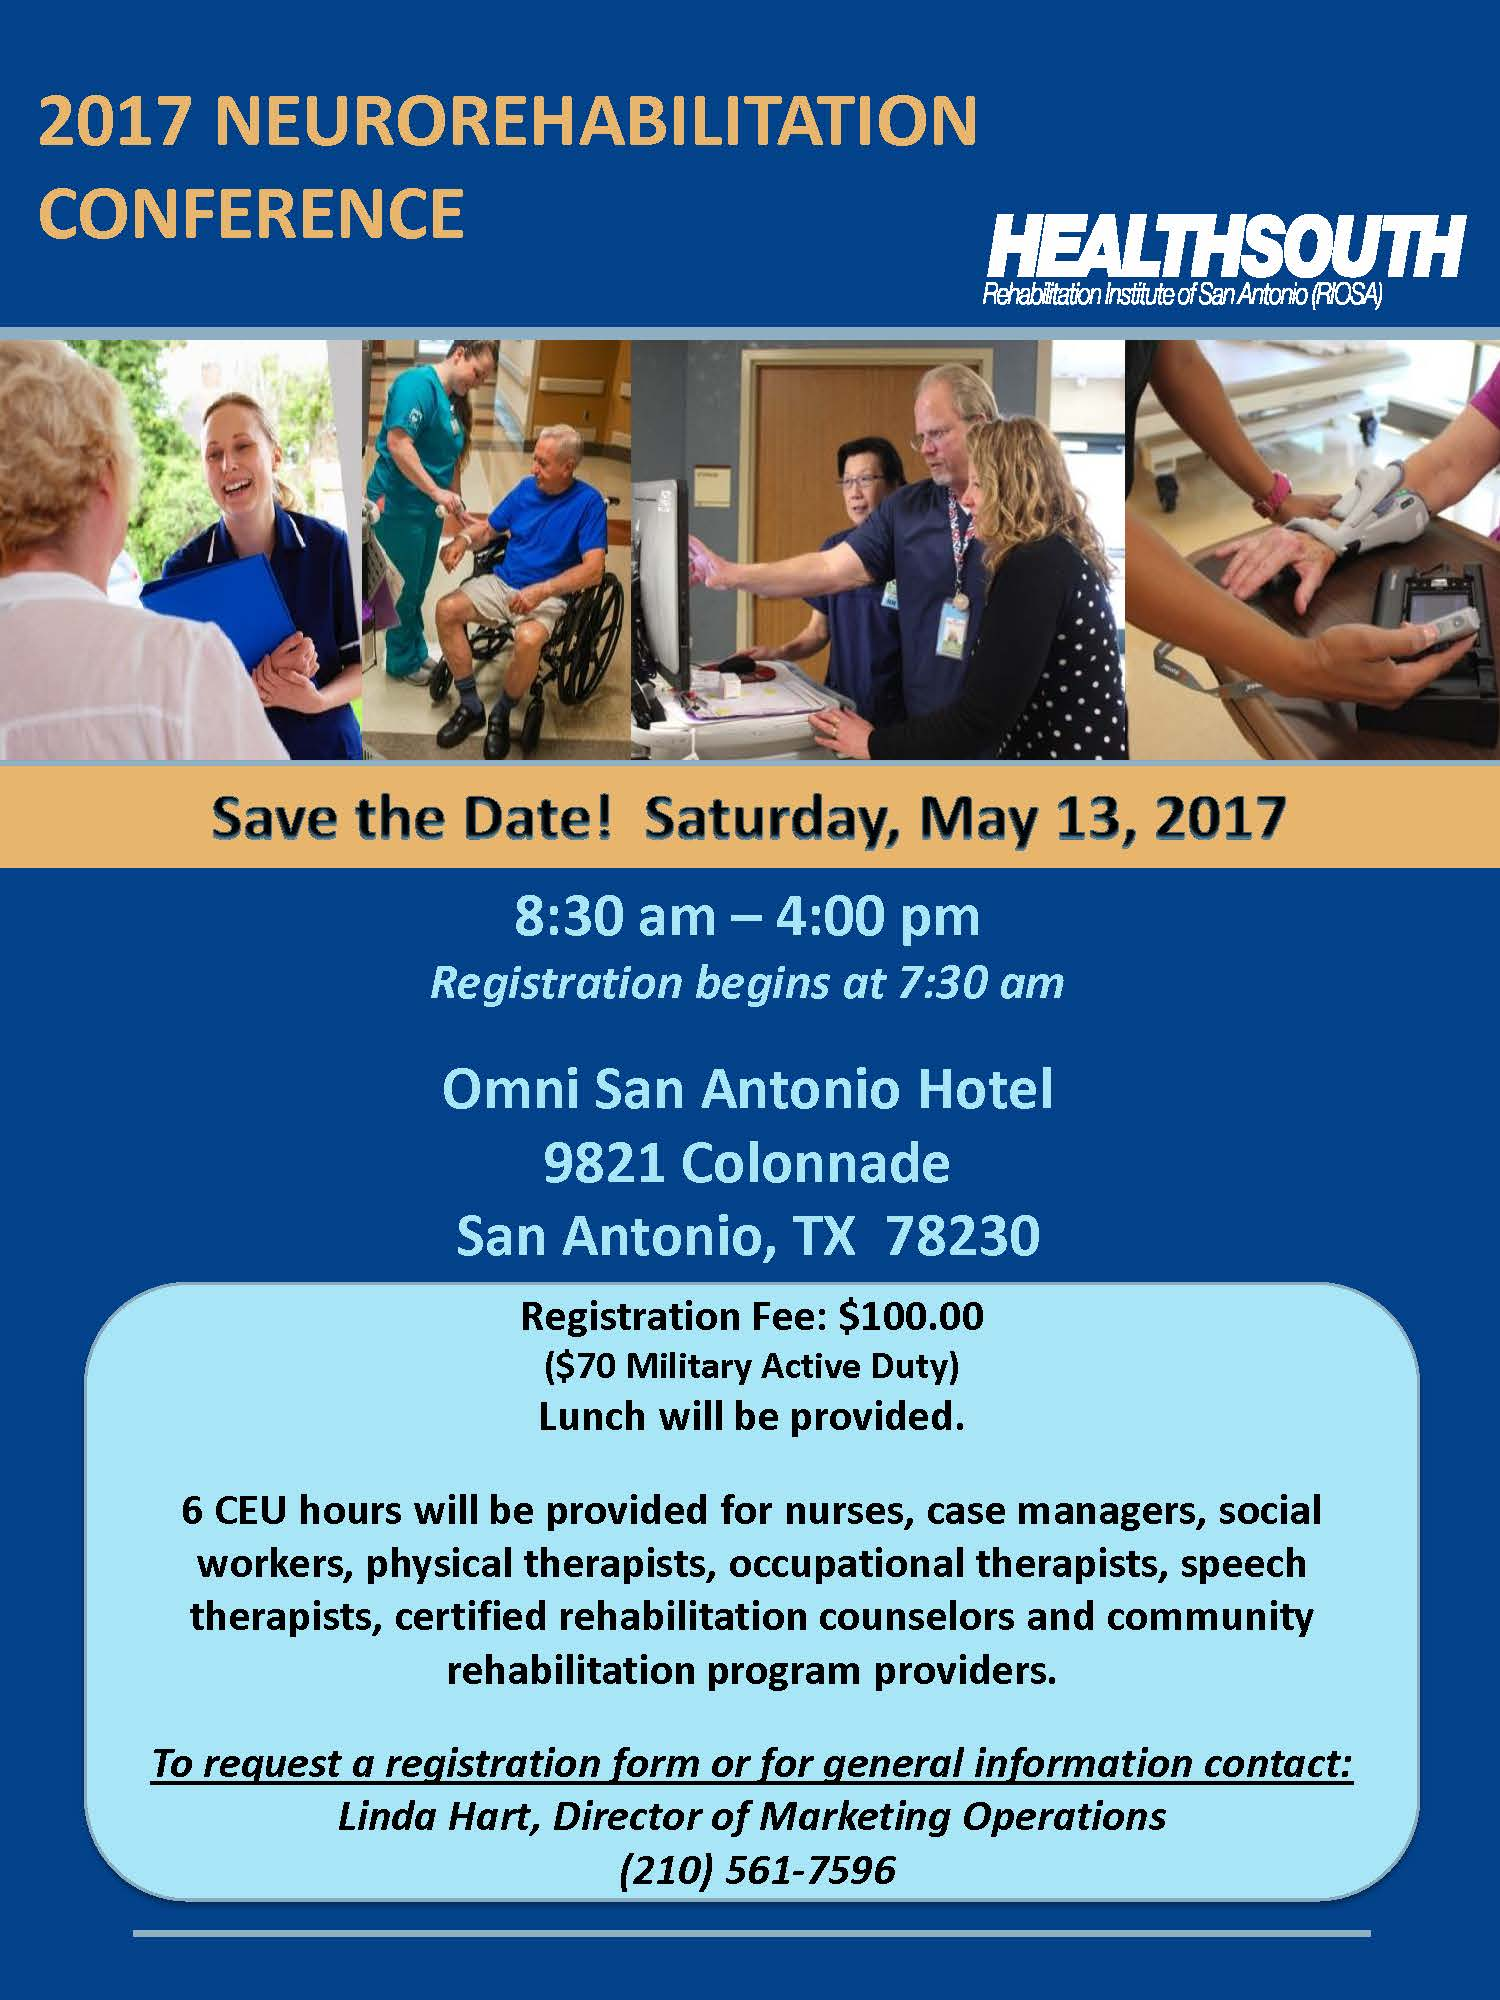 Healthsouth physical therapy - Healthsouth Riosa S 2017